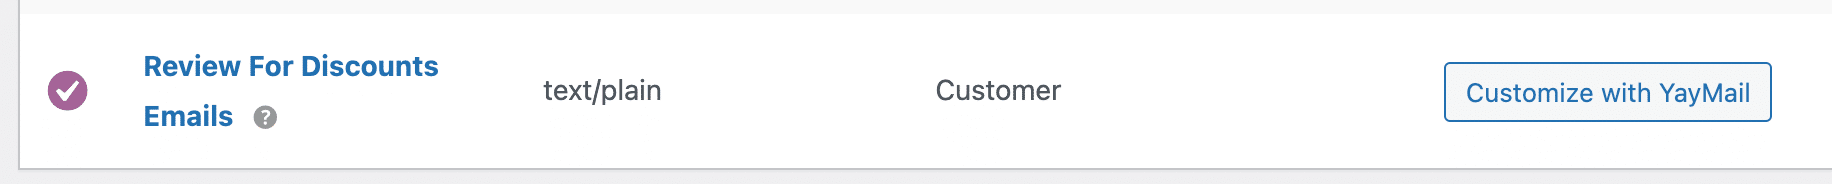 Review for discounts emails in WooCommerce settings